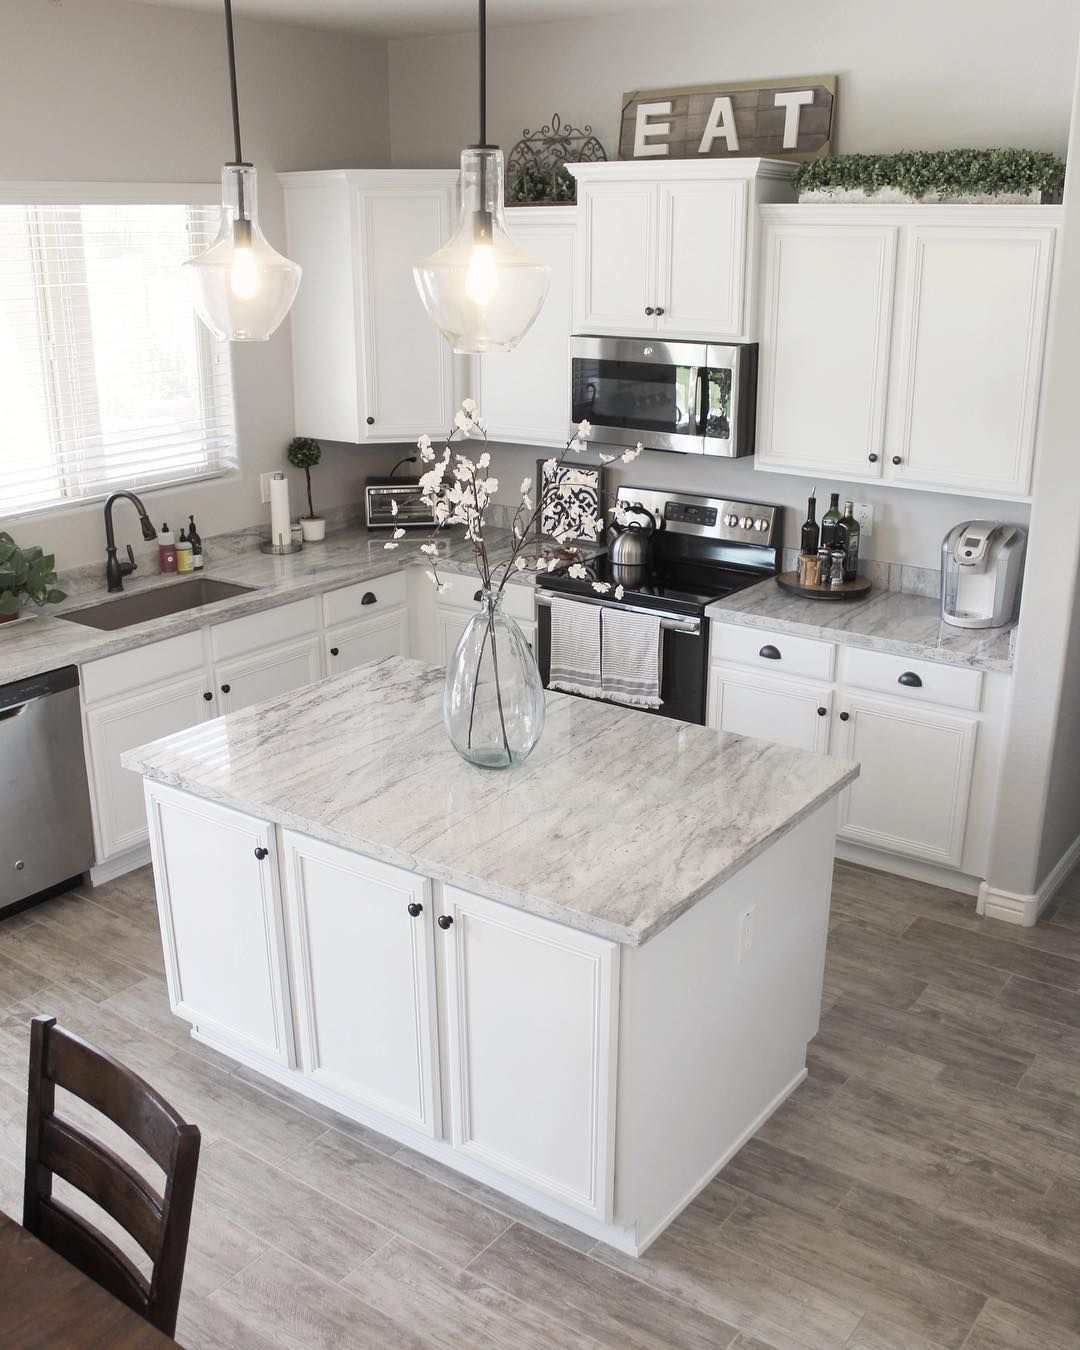 What Does A Kitchen Designer Do: Do You Walk Around The House Barefoot All Summer, Or Do